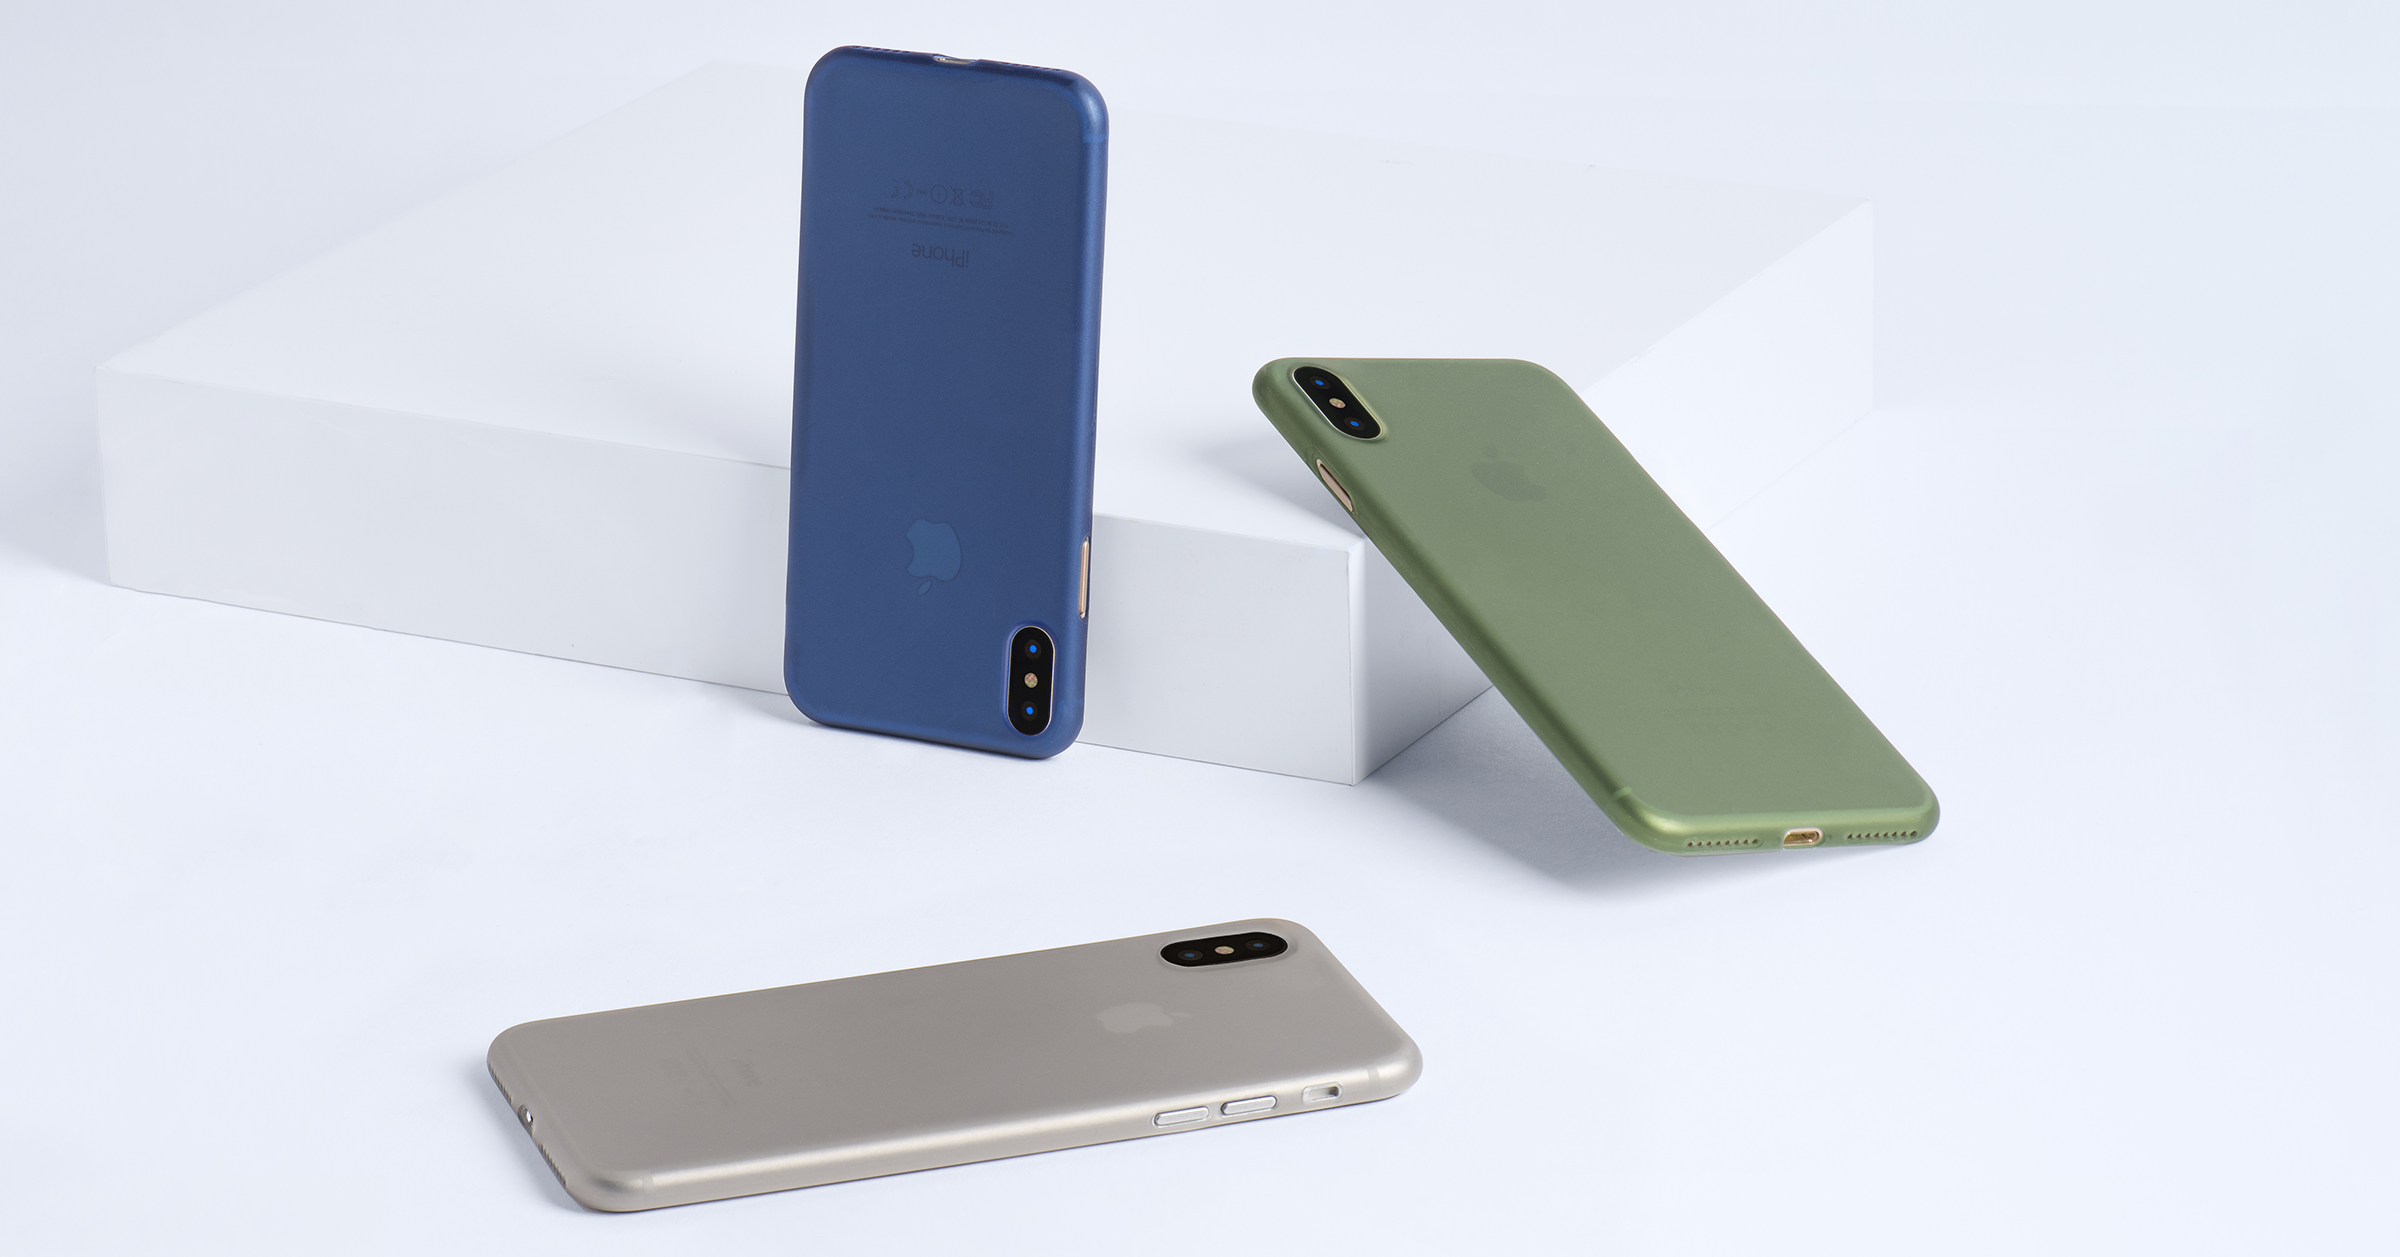 Totallee's super thin, branding-free iPhone 8/8 Plus and iPhone X